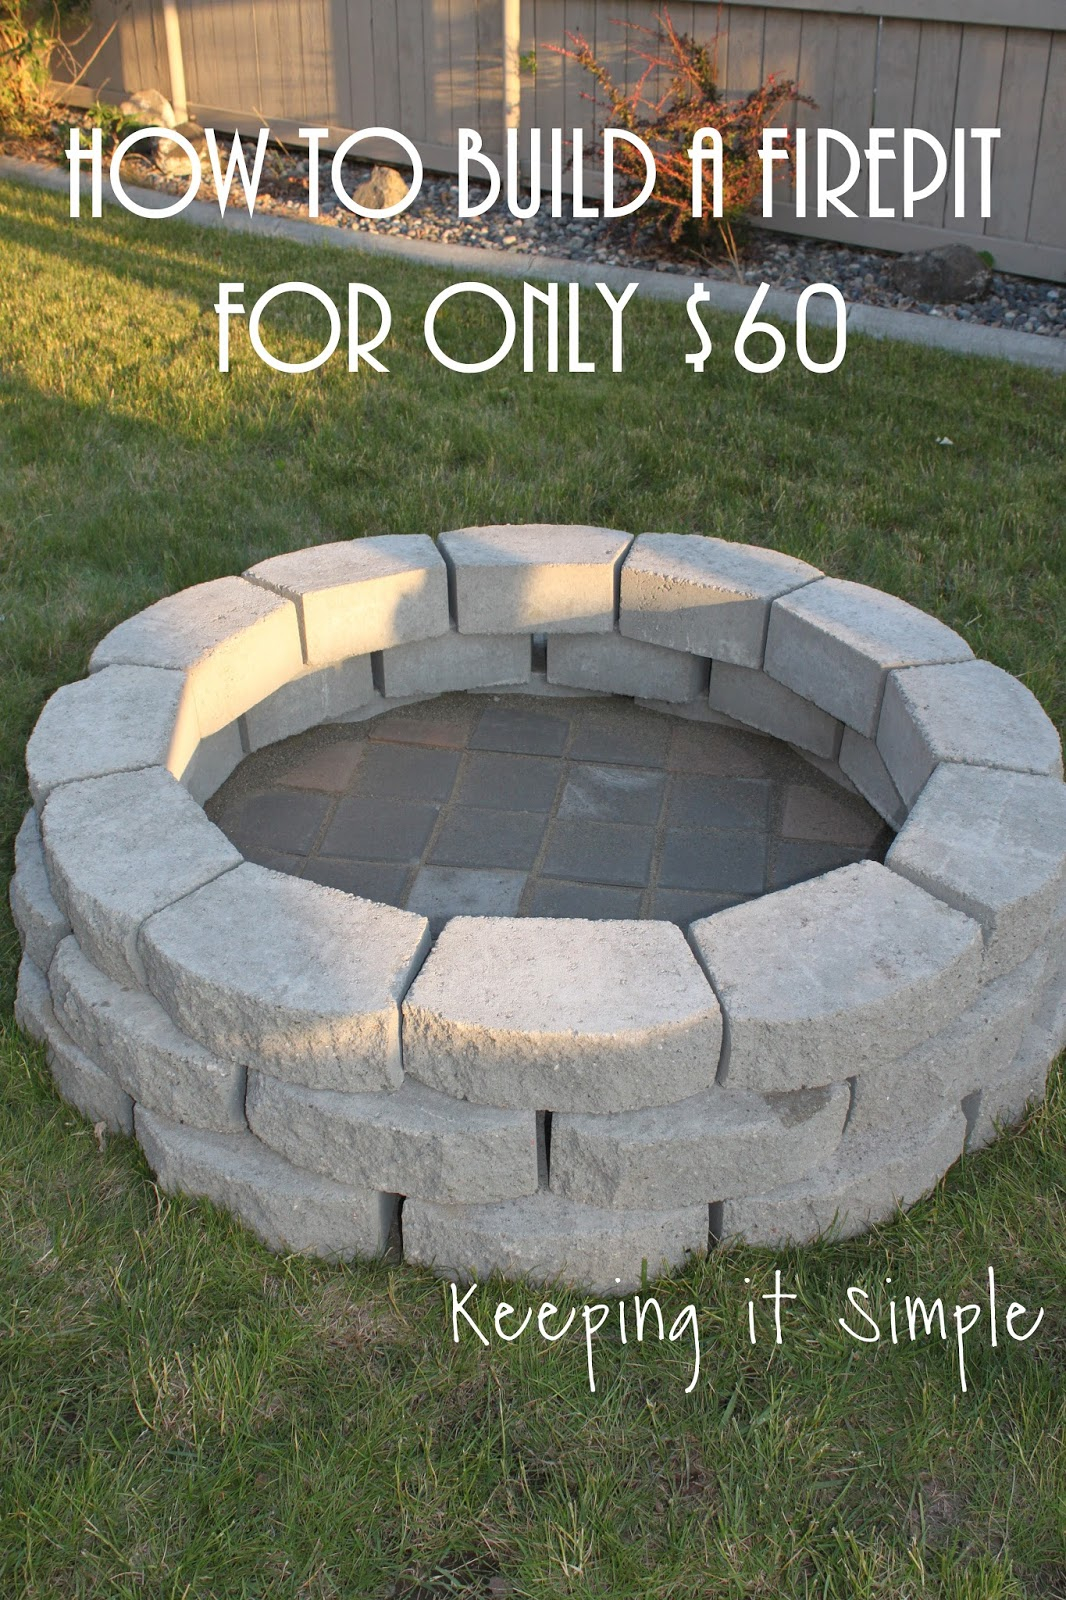 How To Build A Diy Fire Pit For Only 60 Keeping It Simple throughout 14 Awesome Ways How to Make Backyard Firepit Ideas